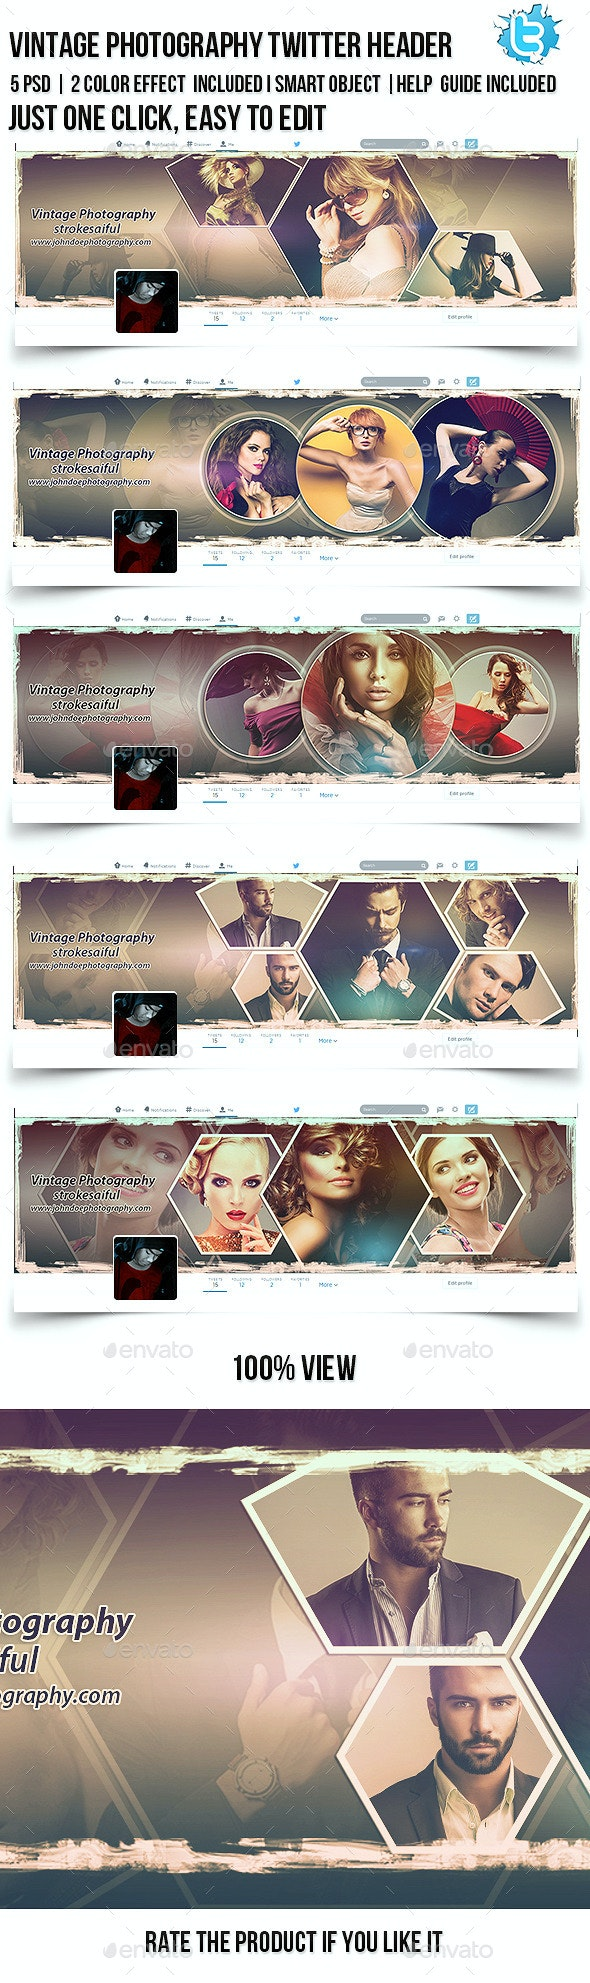 Vintage Photography Twitter Cover - Twitter Social Media